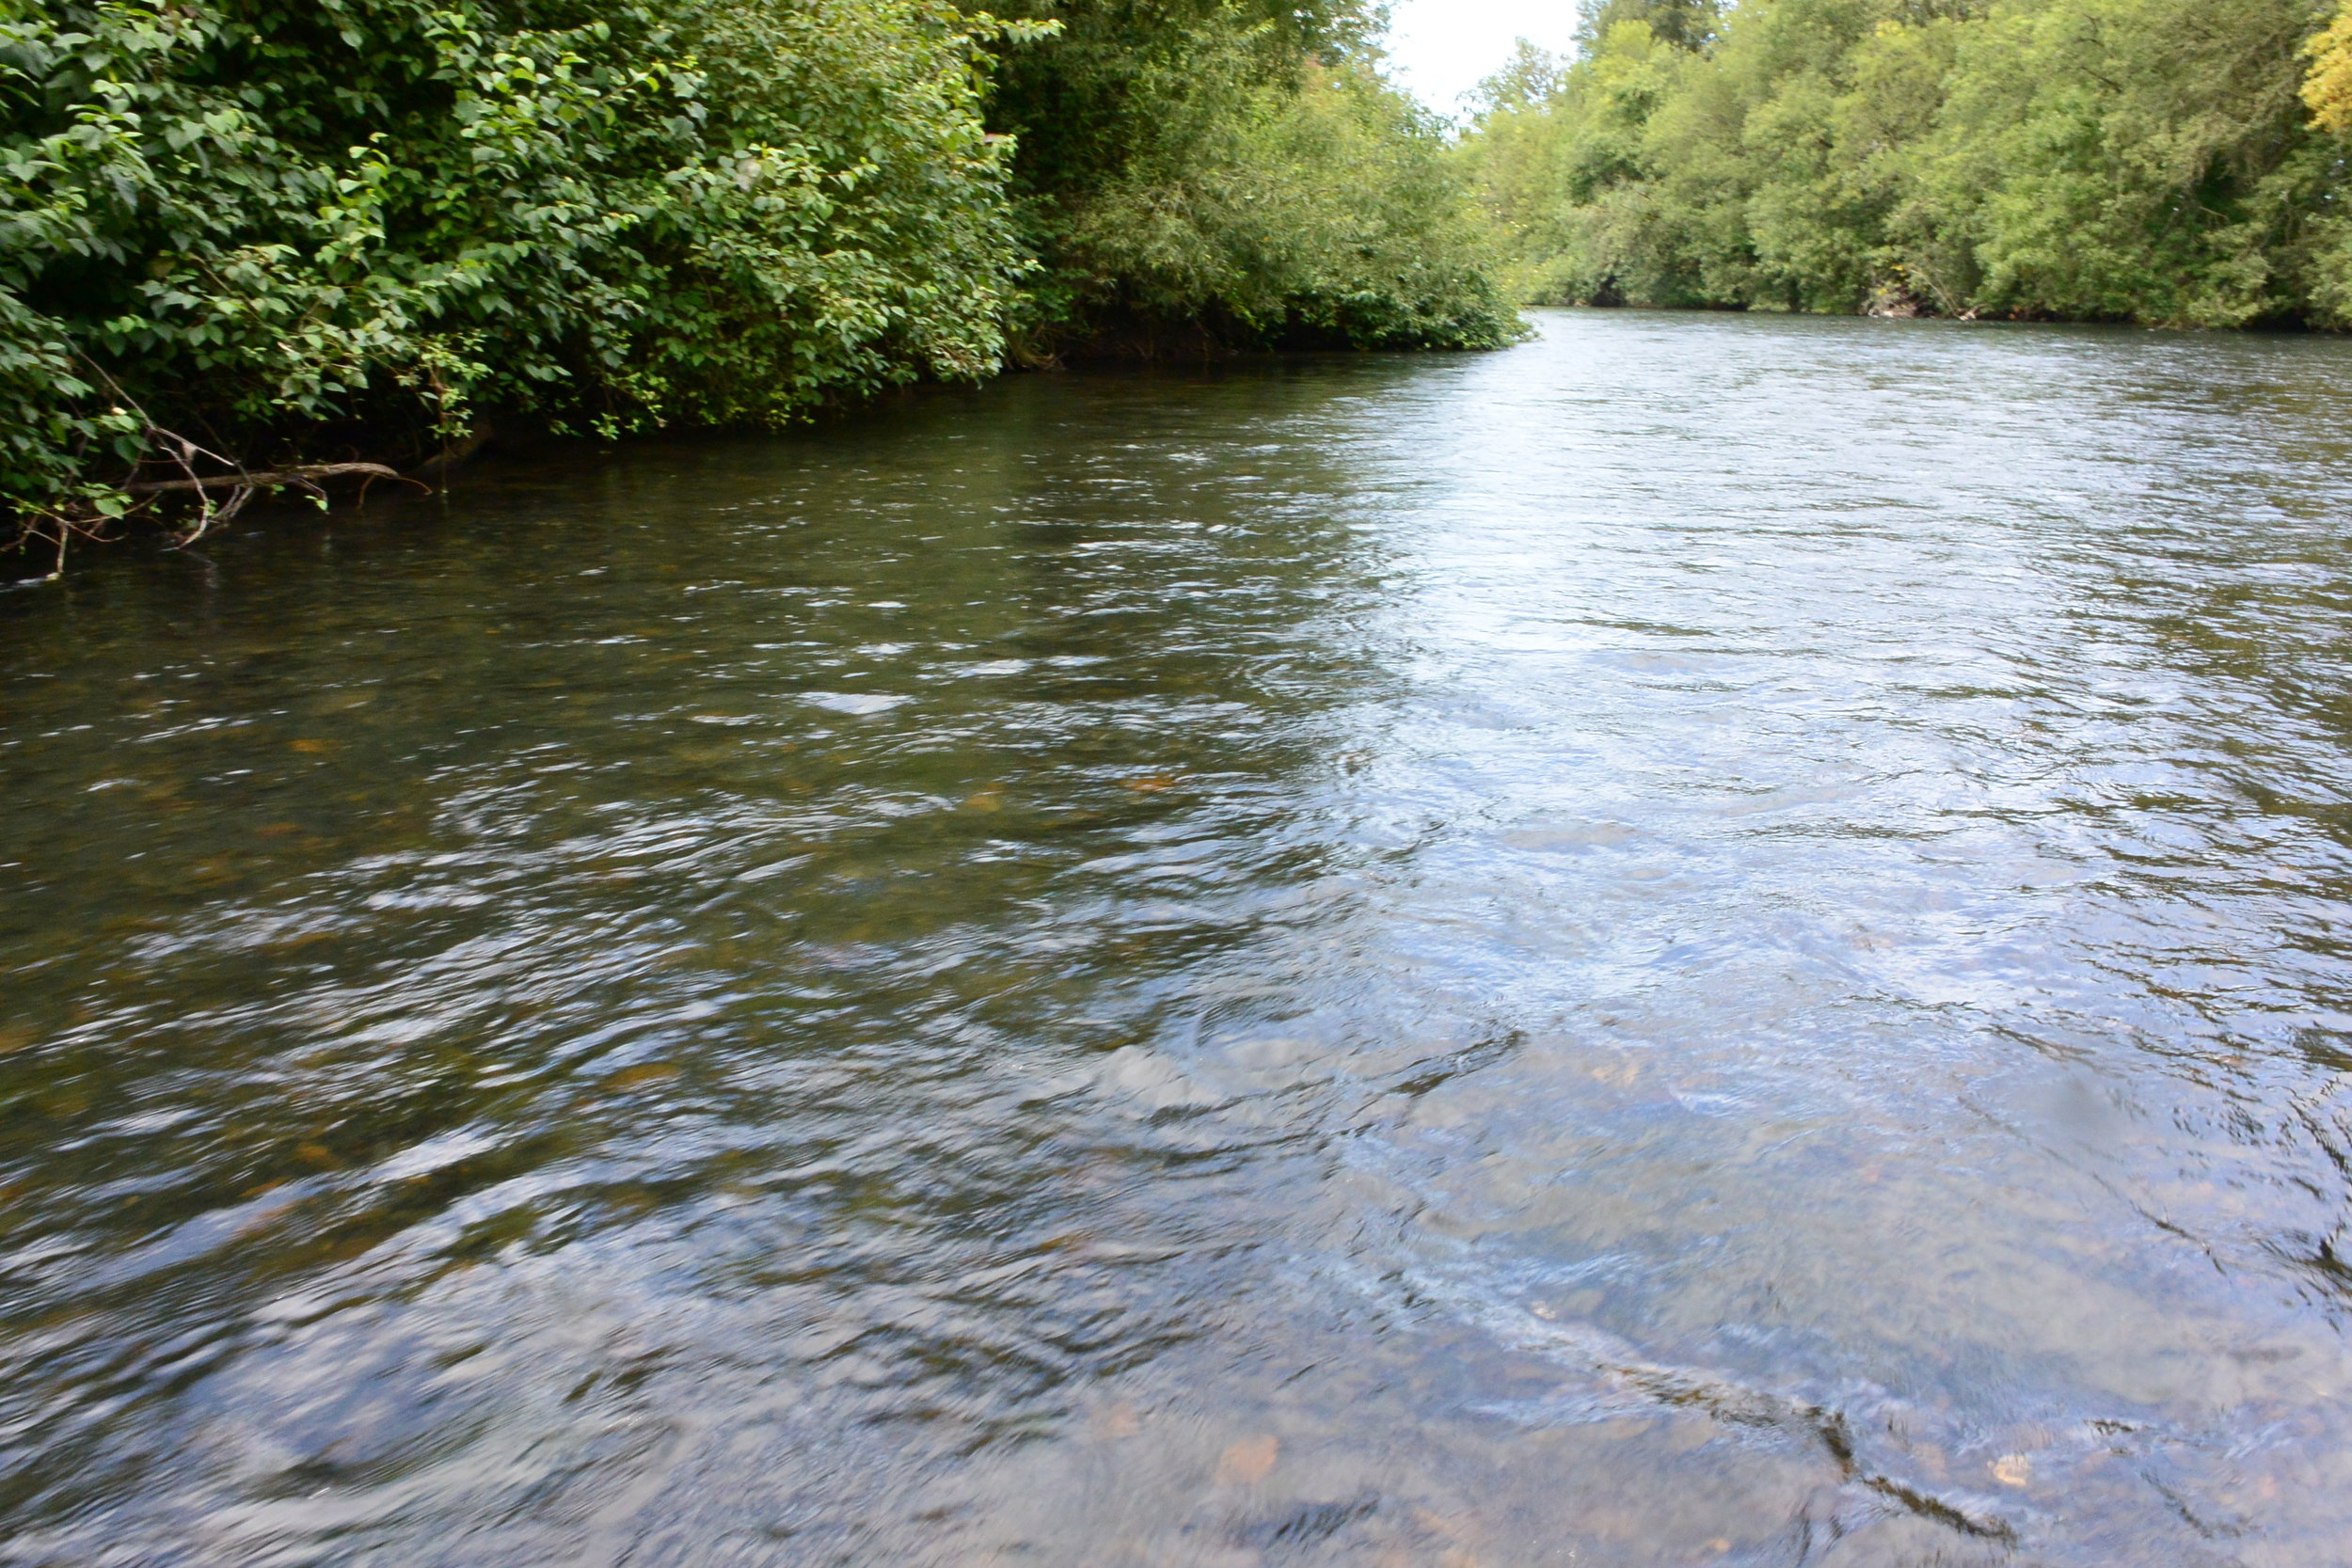 A swift moving Willamette side channel, sometimes where Western Pearlshell can be located.